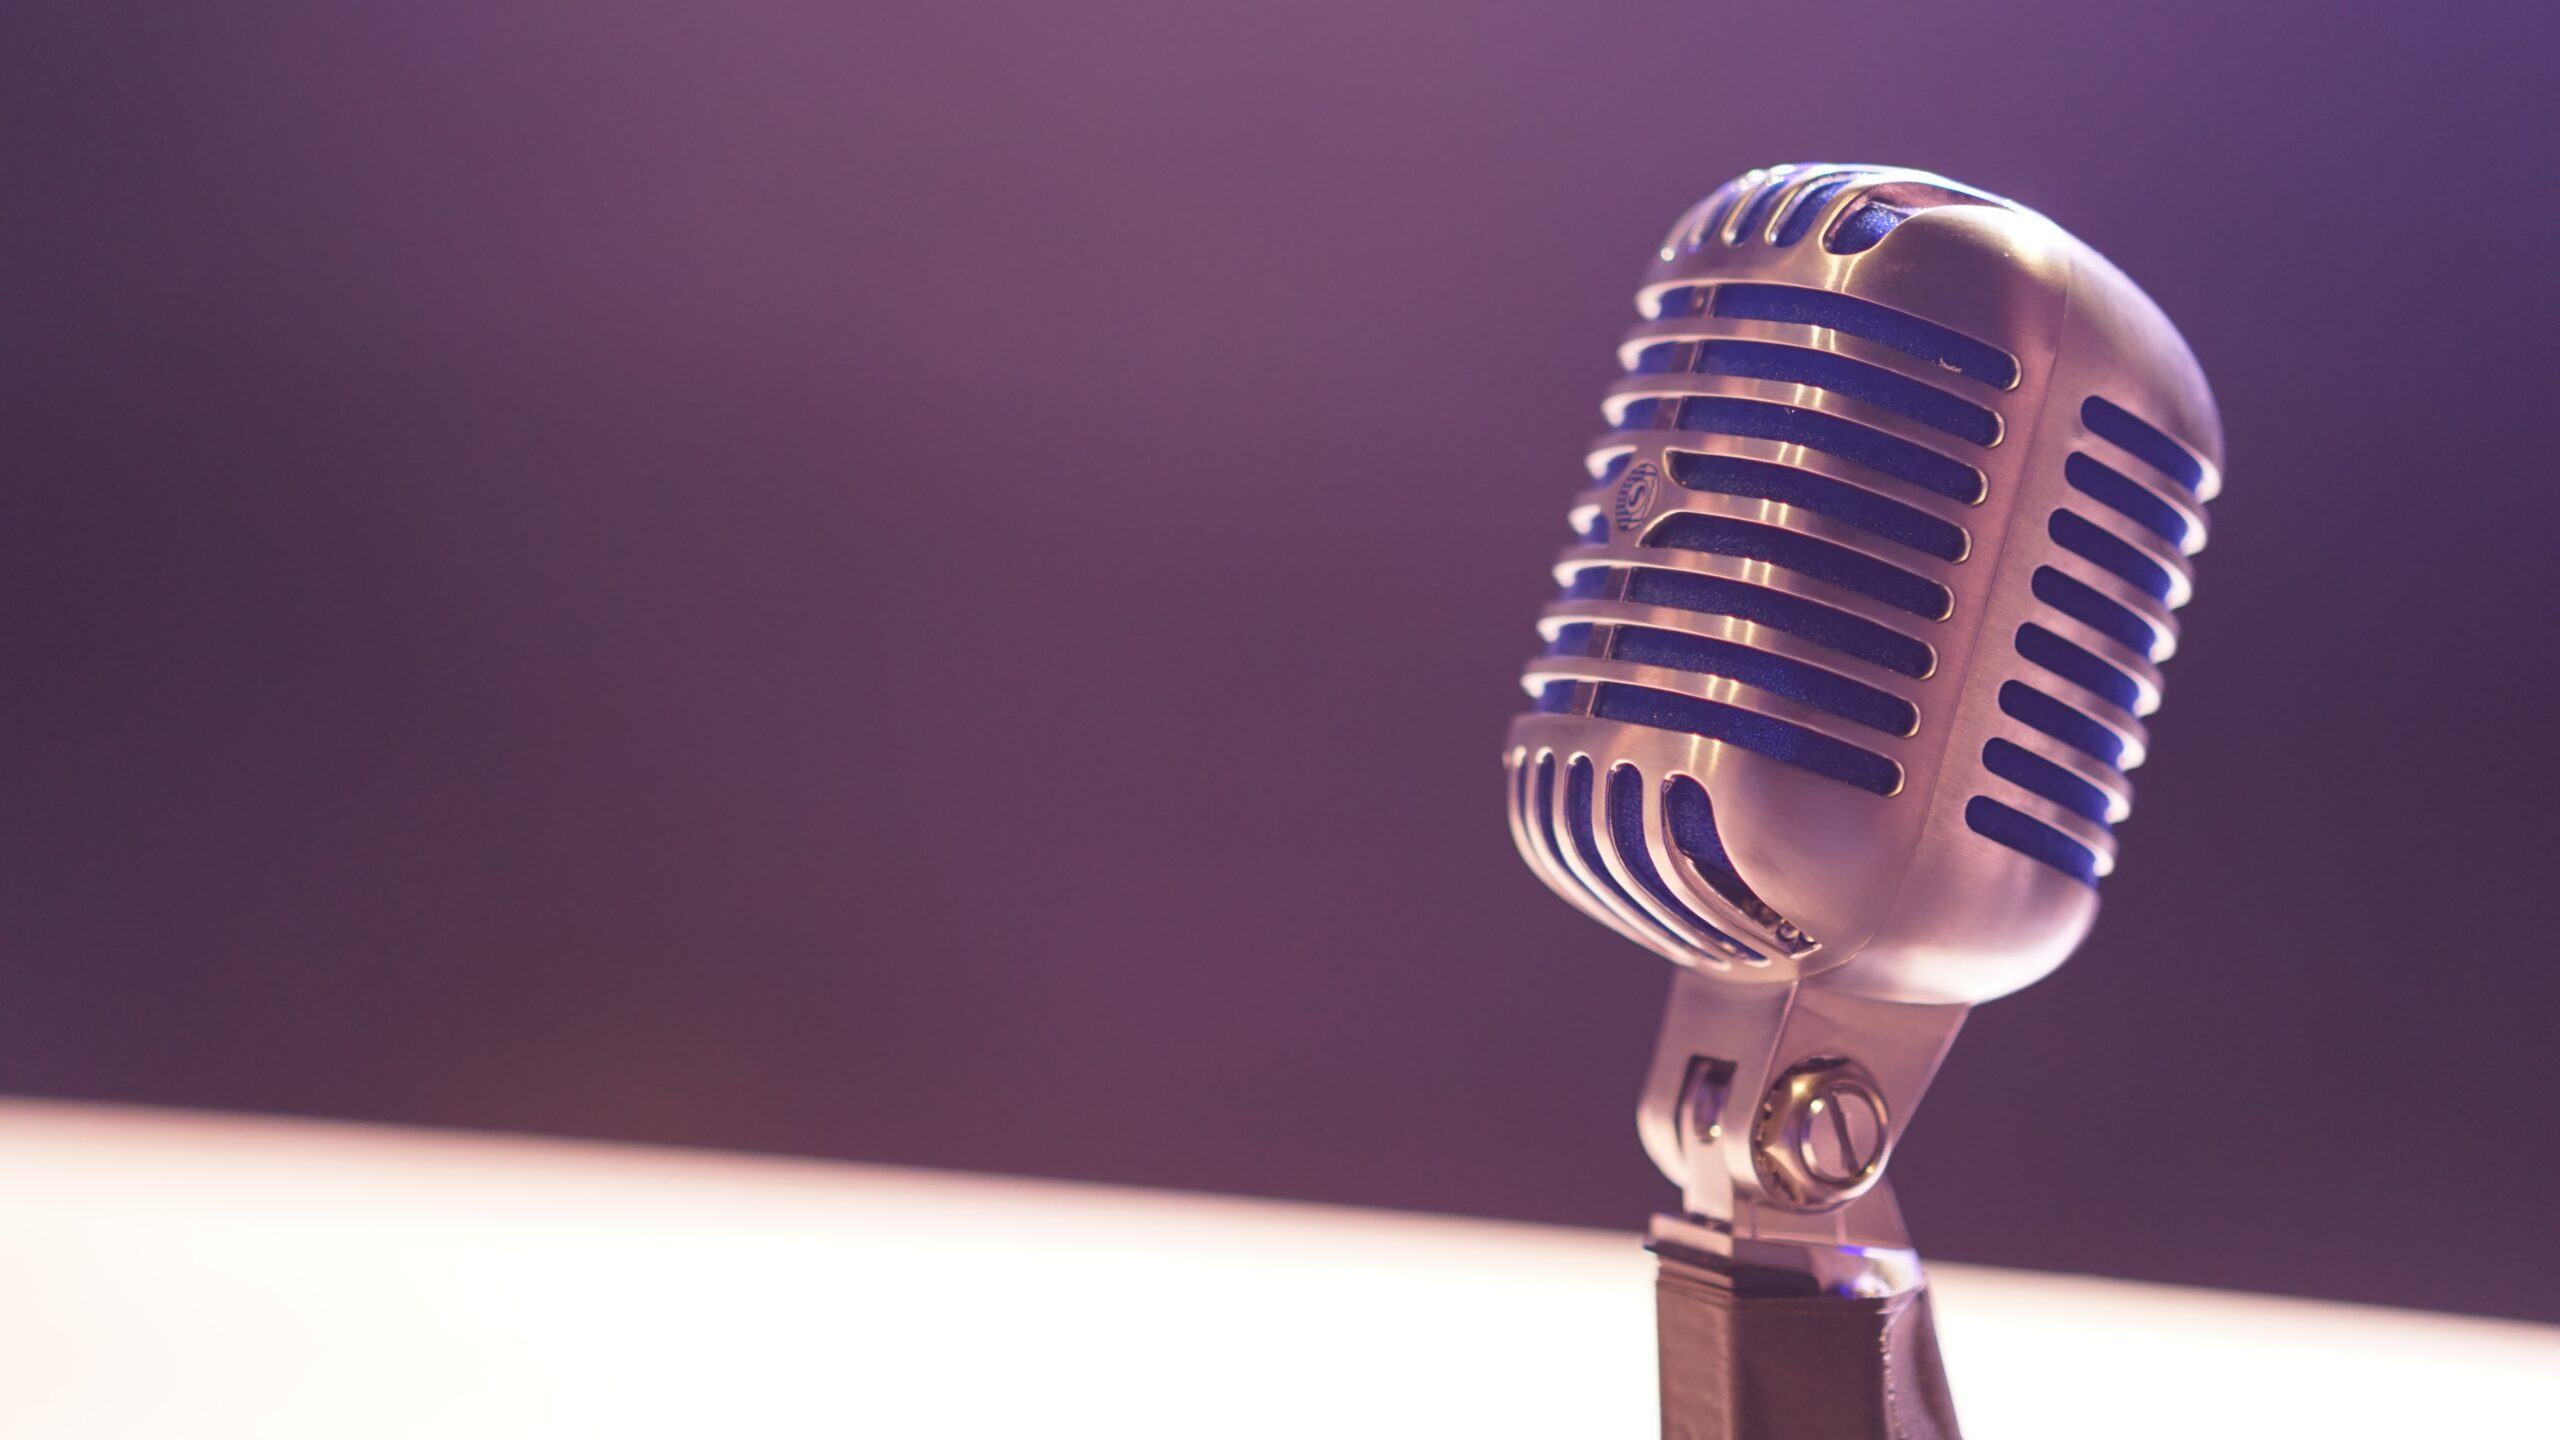 A dark room with a spotlight on an older microphone